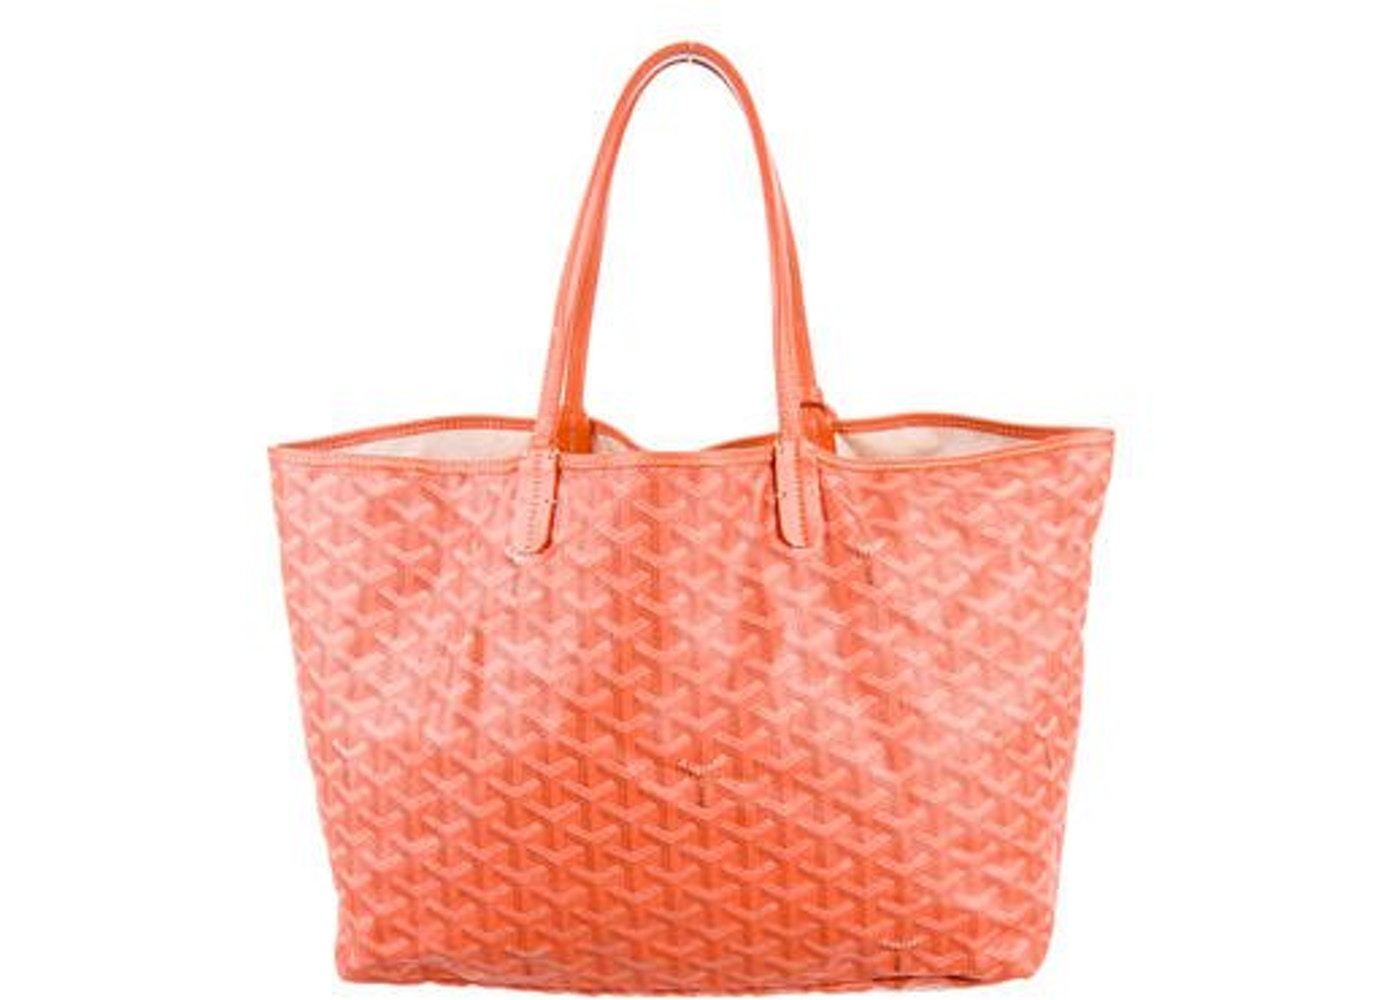 All The Different Colors Of Goyard Bags Stockx News